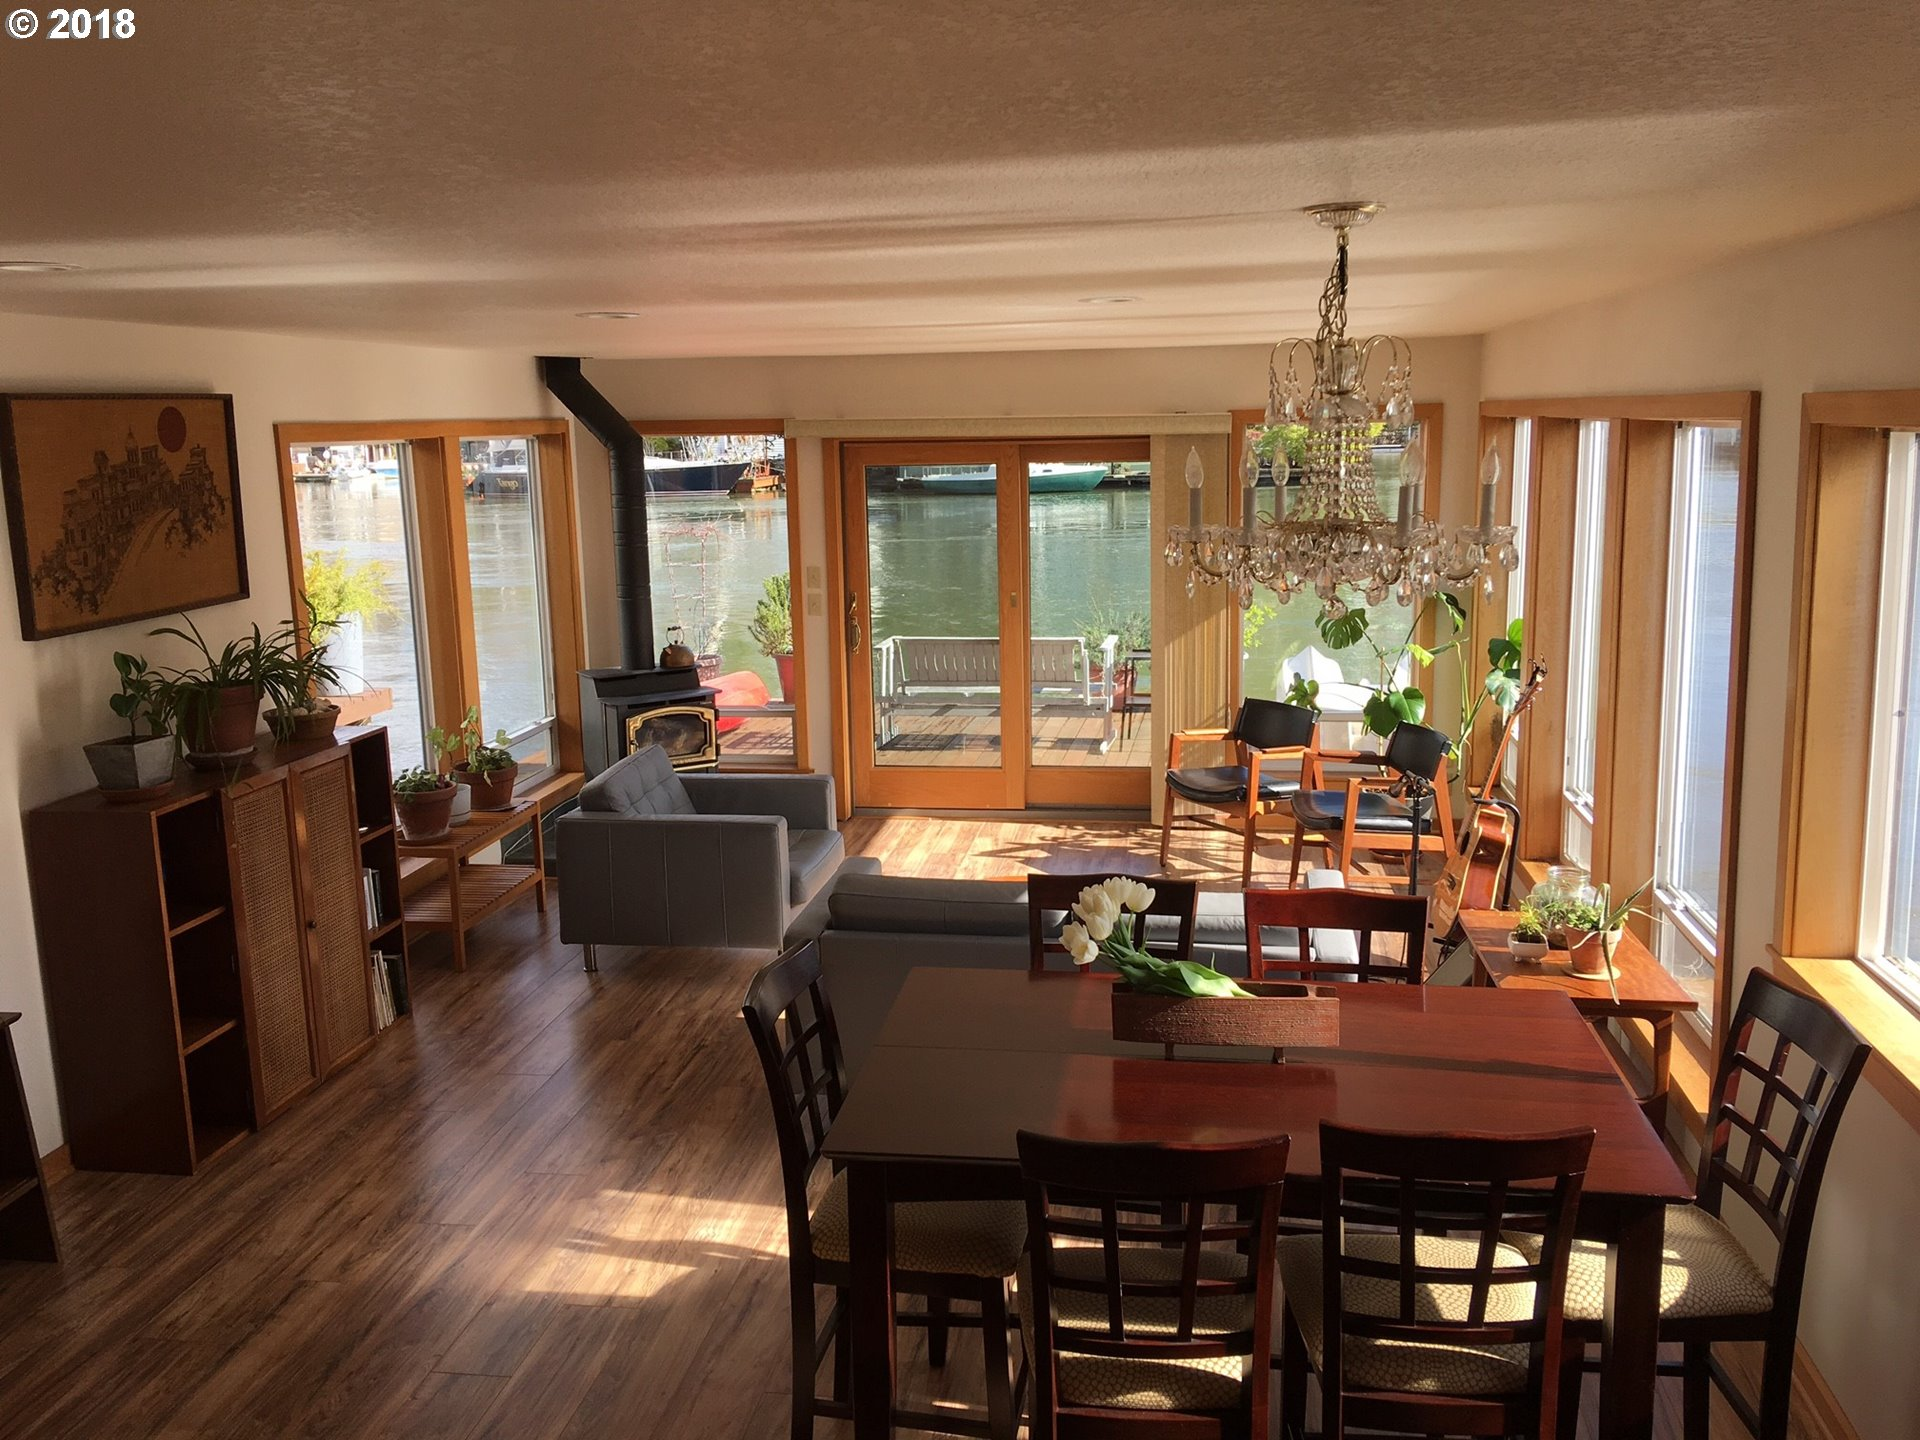 1264 sq. ft 2 bedrooms 2 bathrooms  House For Sale,Portland, OR